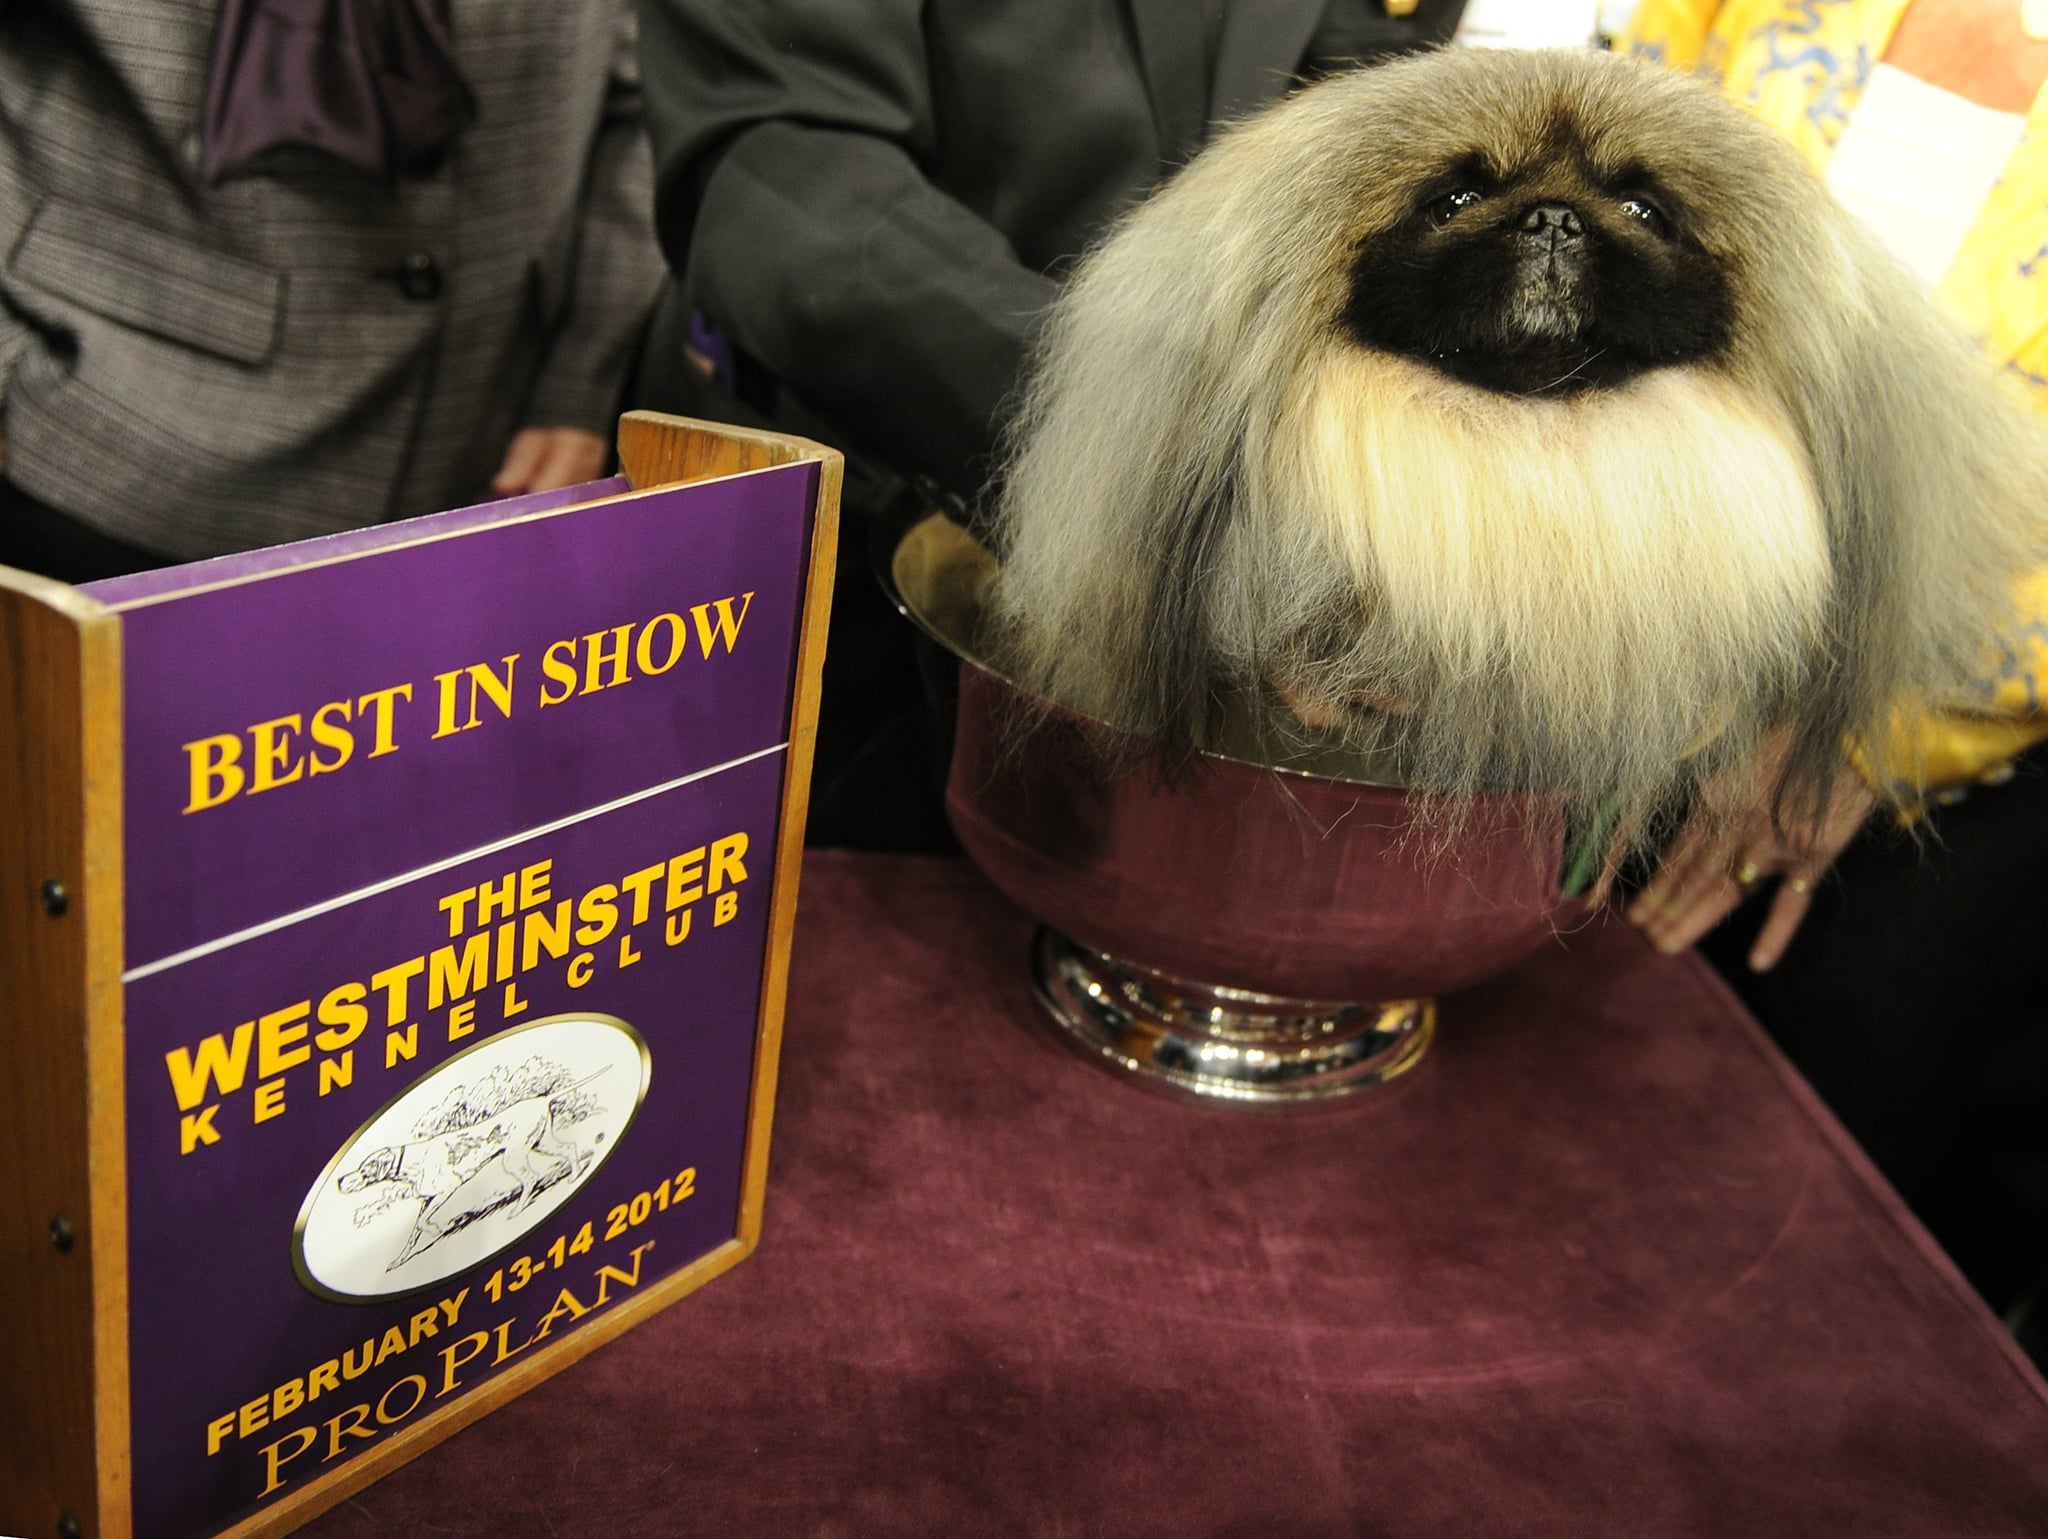 And the winner is . . . Malachy! The adorable Pekingese with the lustrous locks stole our hearts and the grand prize.